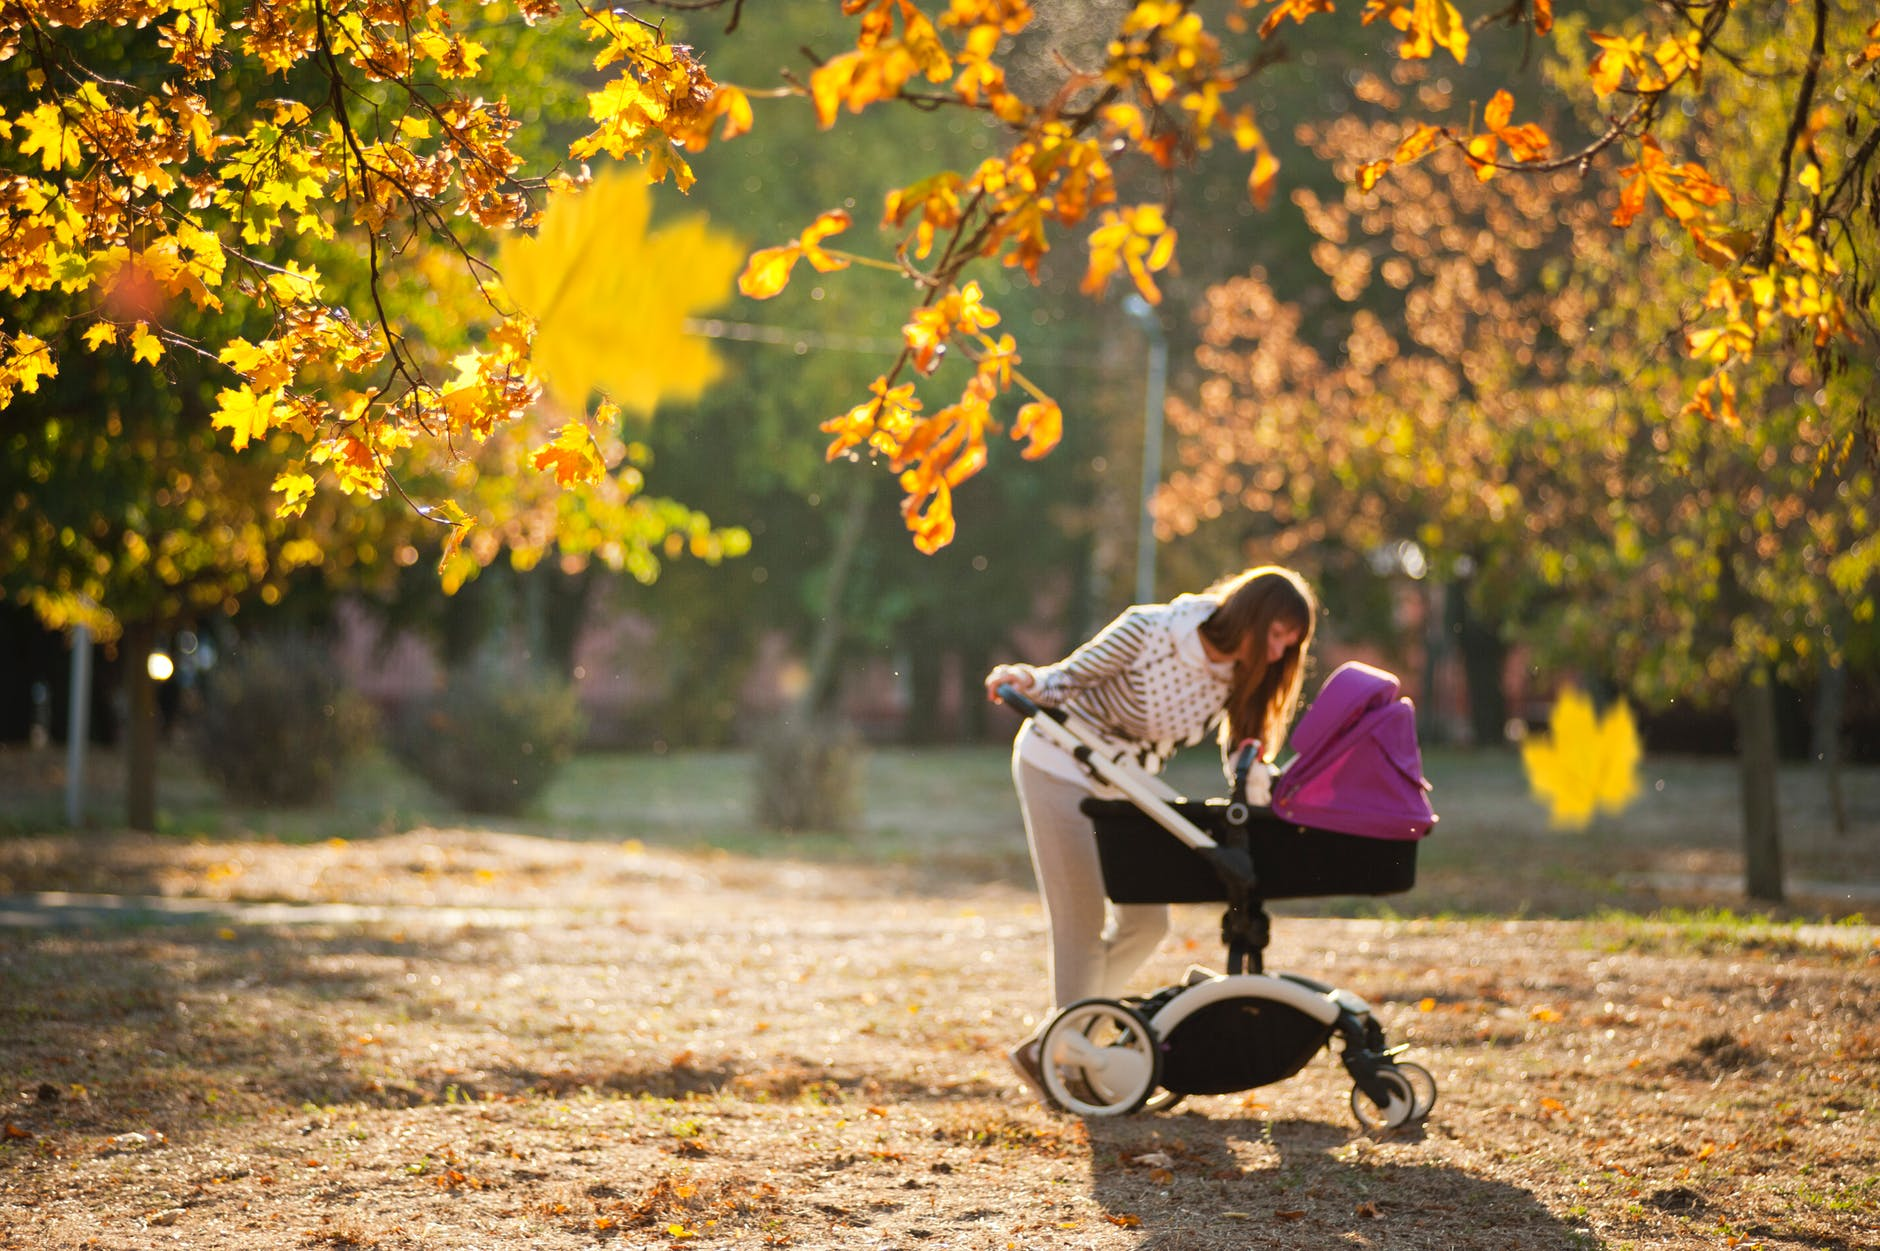 Buying Guide of Jogging Stroller for Infants and Toddlers Under 6 Months